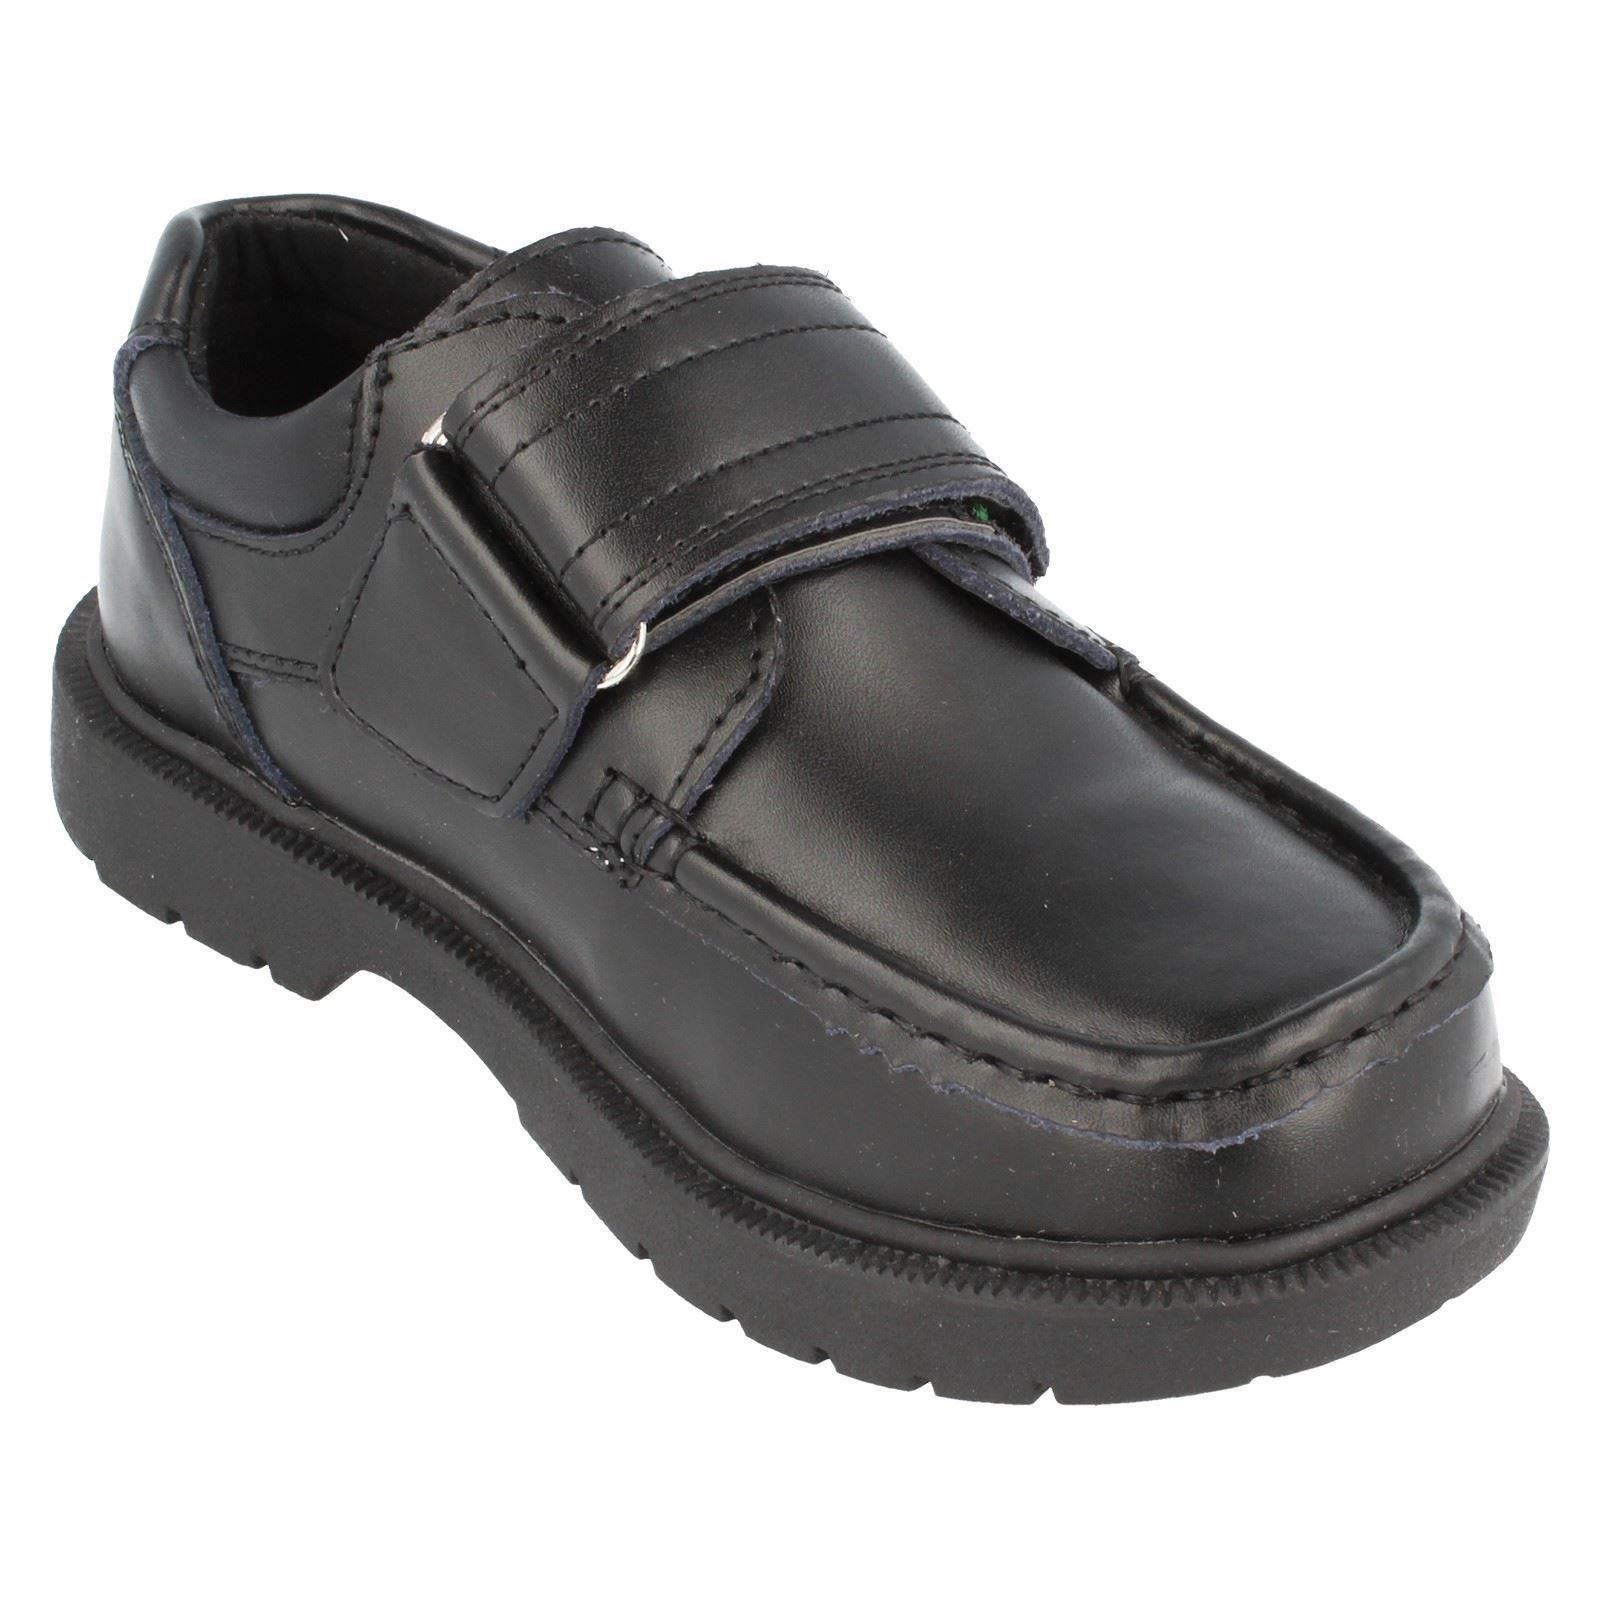 Boys Jcdees Leather Shoes N1066 ~ N